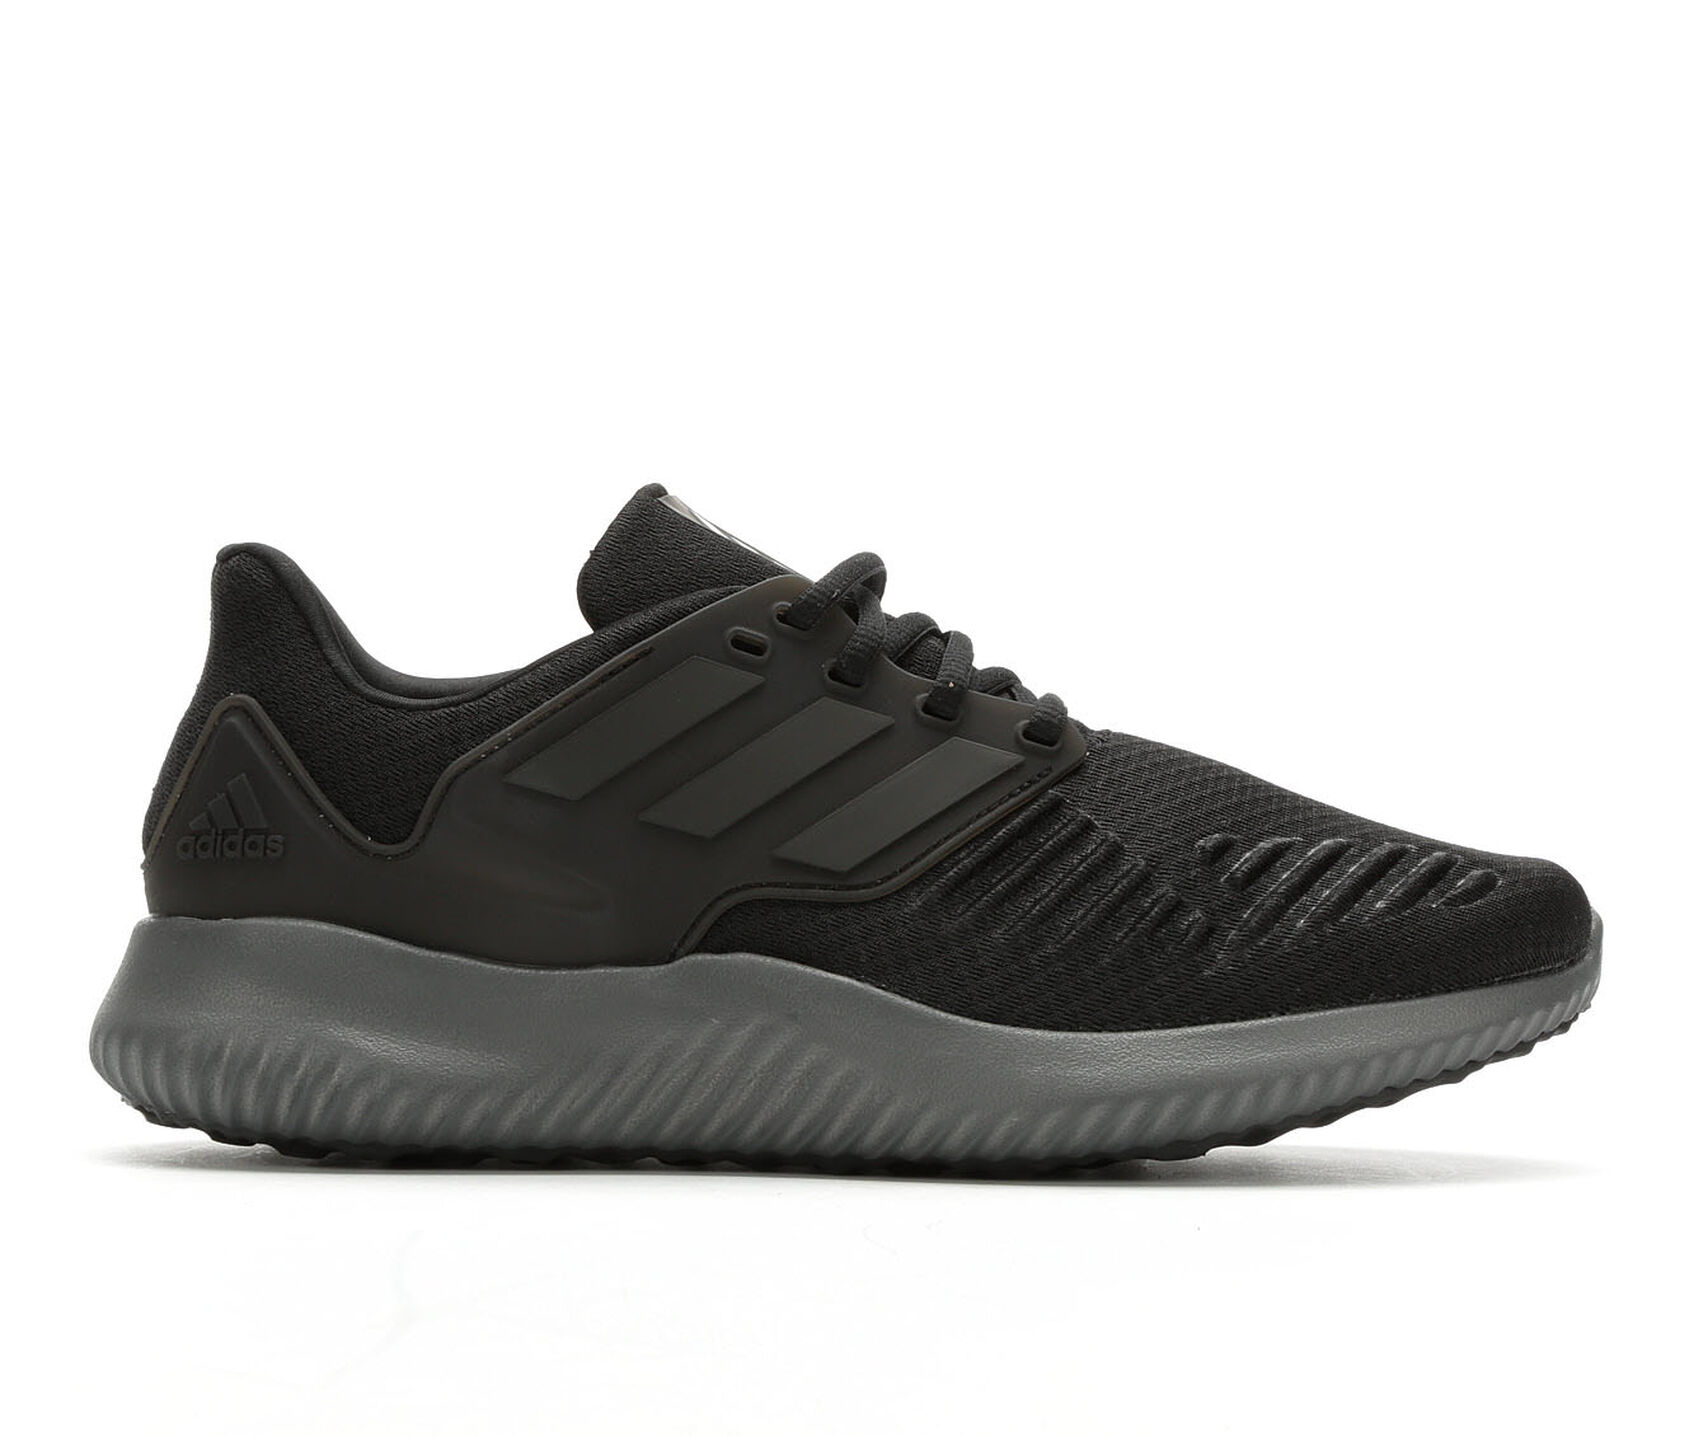 daf00f78d0688 ... Adidas Alphabounce RC 2 Running Shoes. Previous